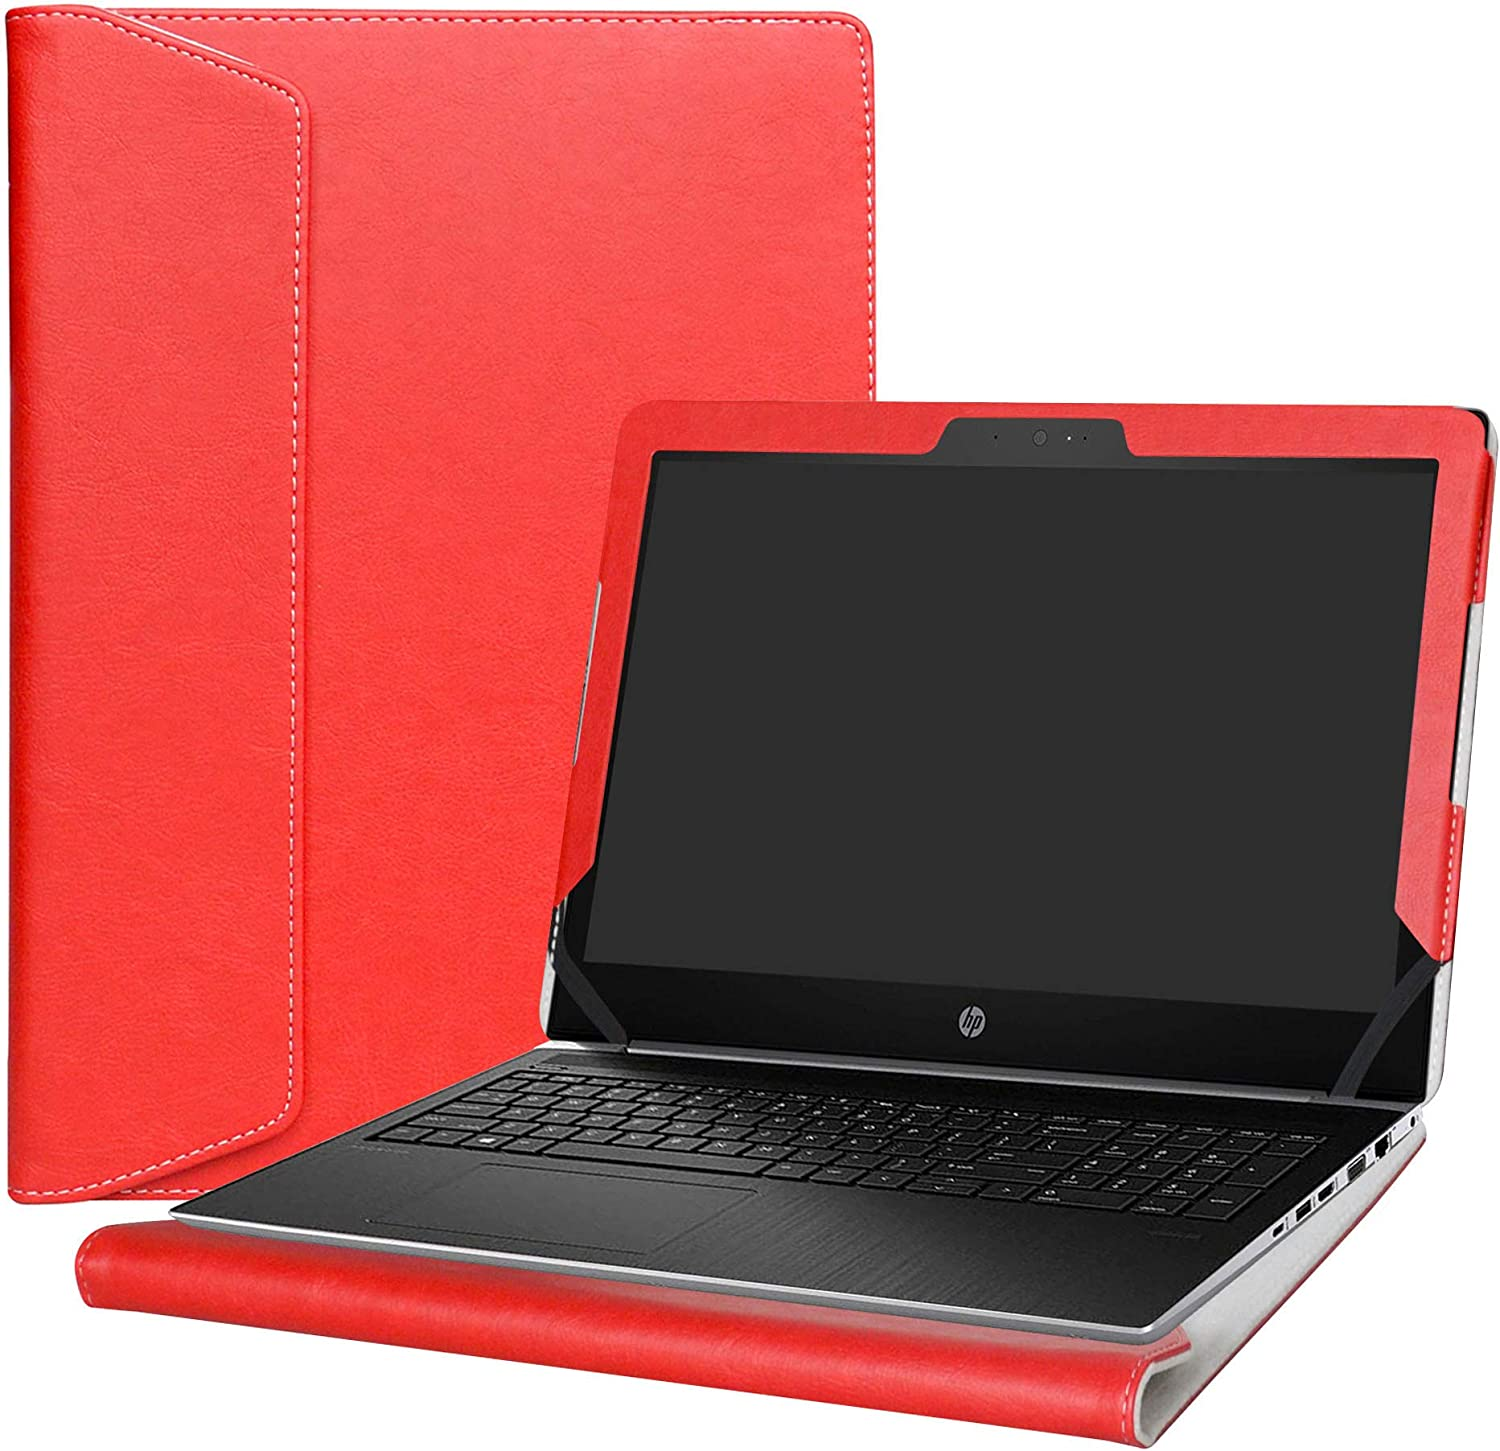 """Alapmk Protective Case Cover for 14"""" HP ProBook 440 G5 & HP mt21/mt43 & HP ZBook 14u G4 & HP EliteBook 745 G4 G3 G2/EliteBook 840 G4 G3 G2/EliteBook 1040 G3 Laptop(Warning:Pls Note Picture 2),Red"""